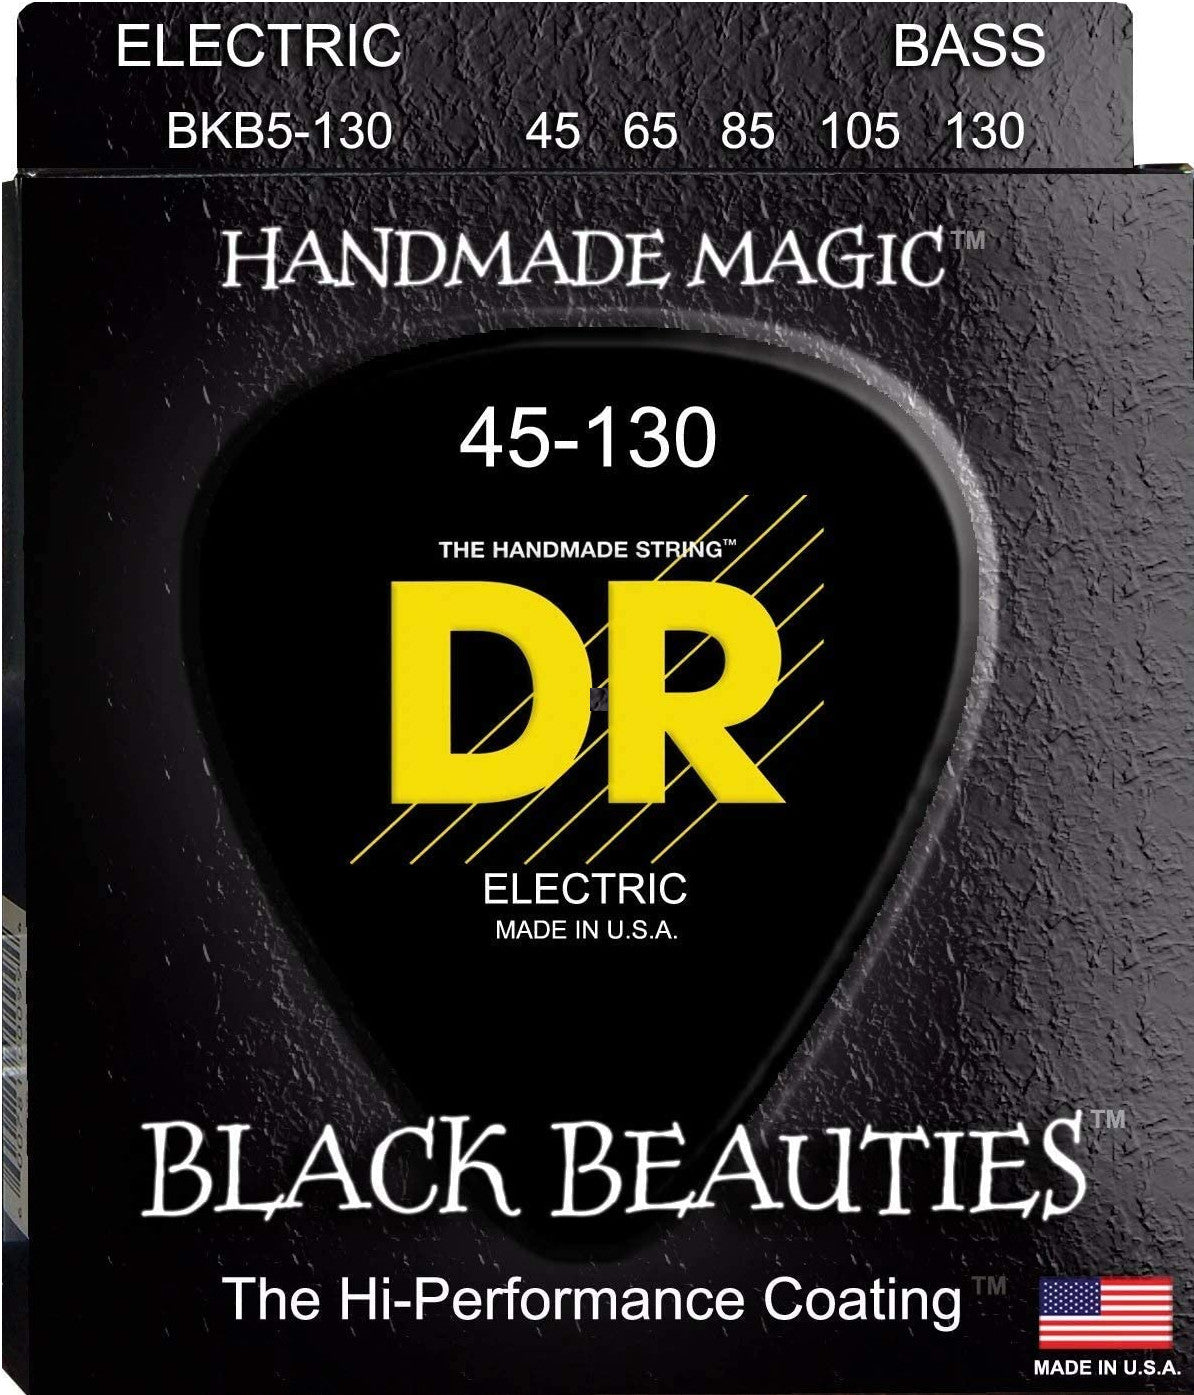 DR Bass Strings 5-Strings Black Beauties Performance Coating BKB5-130 45-130